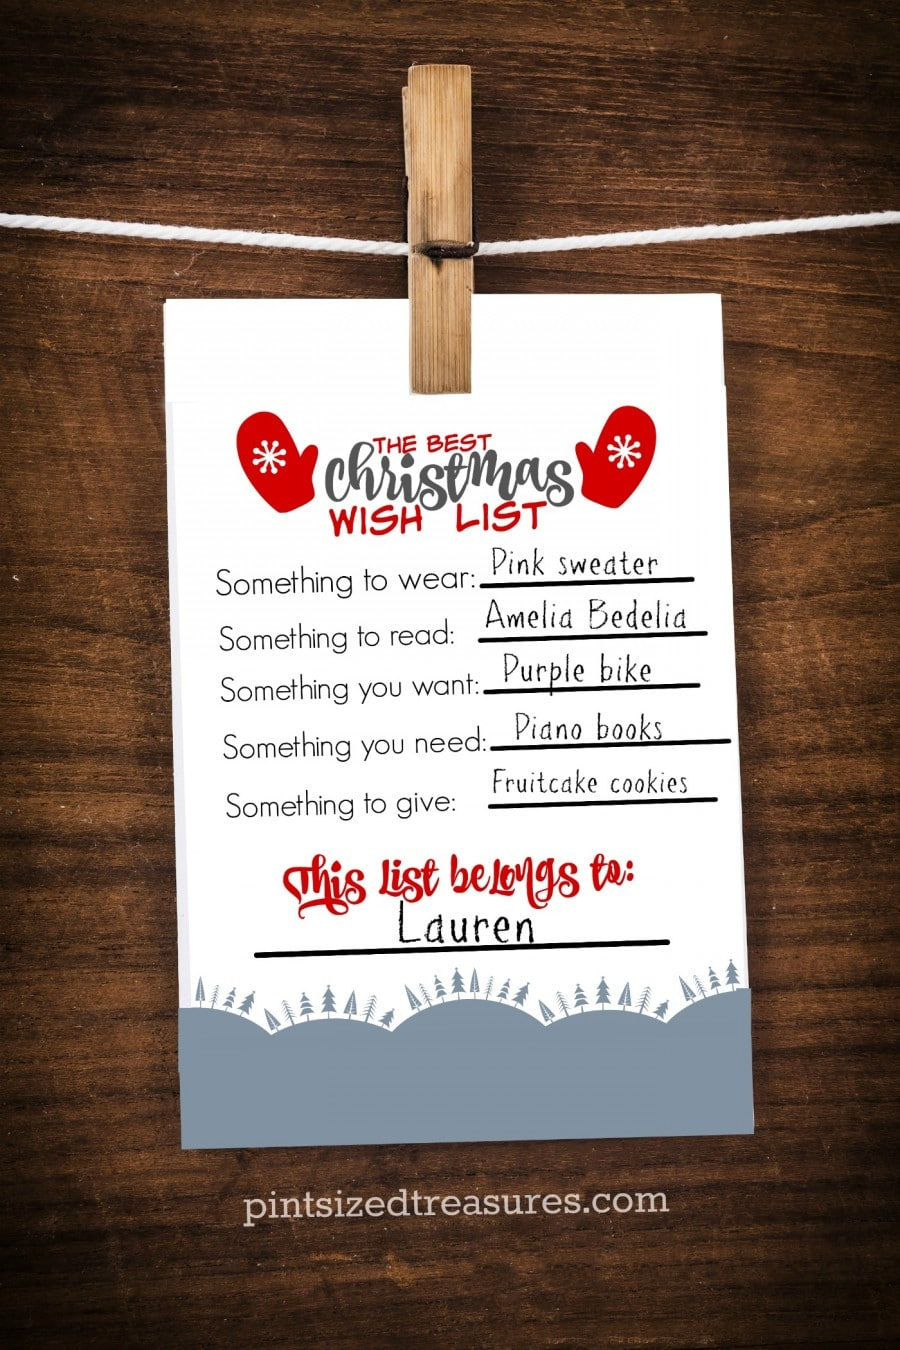 The Best Printable Christmas Wish List For Kids Pint Sized Treasures